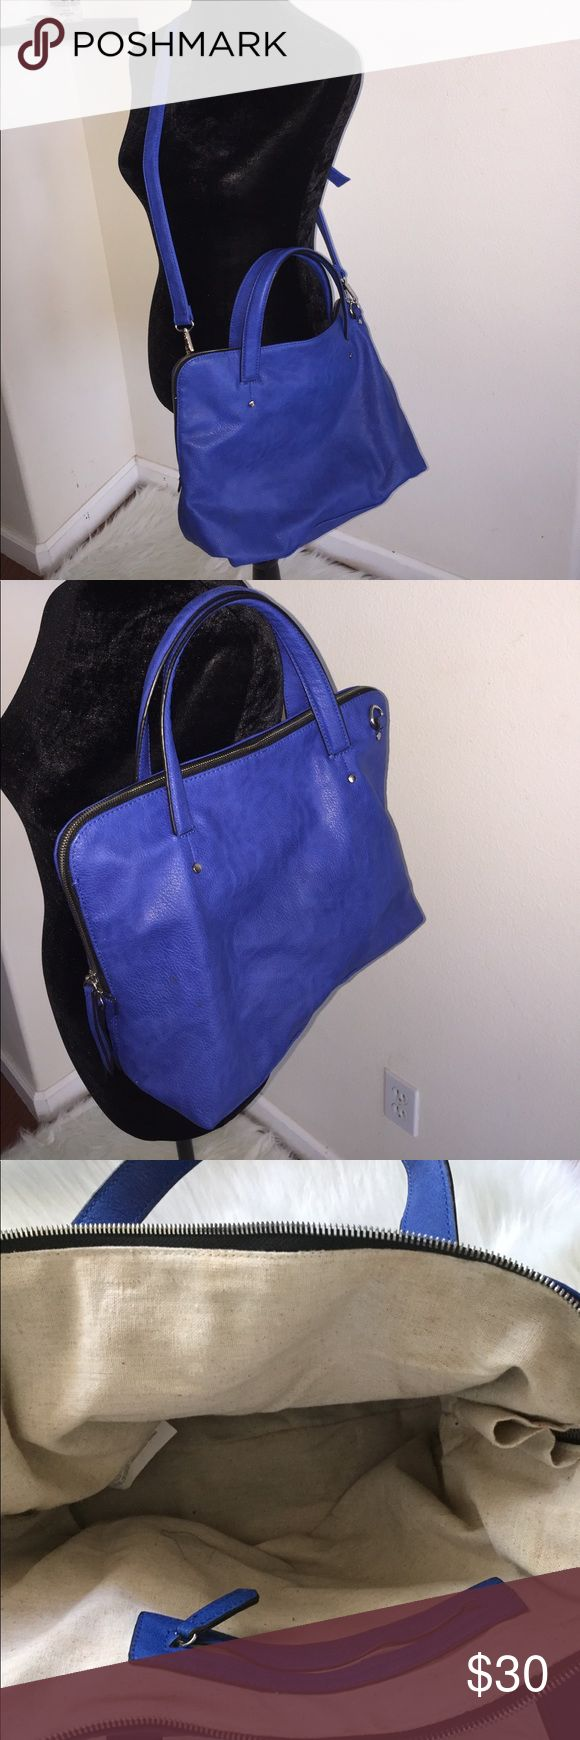 Zara Trafaluc Double Zip Hand/Messenger Bag This royal blue faux Leather Zara tote bag is exactly what you need ! ✨ It's super spacious and really clean ✨ You can detach and re attach the long strap, so this bag is very versatile ✨It has an inside zip pocket ✨ It also has feet on the bottom so you can set your bag down and it won't get dirty ✨ It also has double zippers so when you zip it down on both sides it opens very wide! ✨It's a very beautiful color and size that you'll love and in…